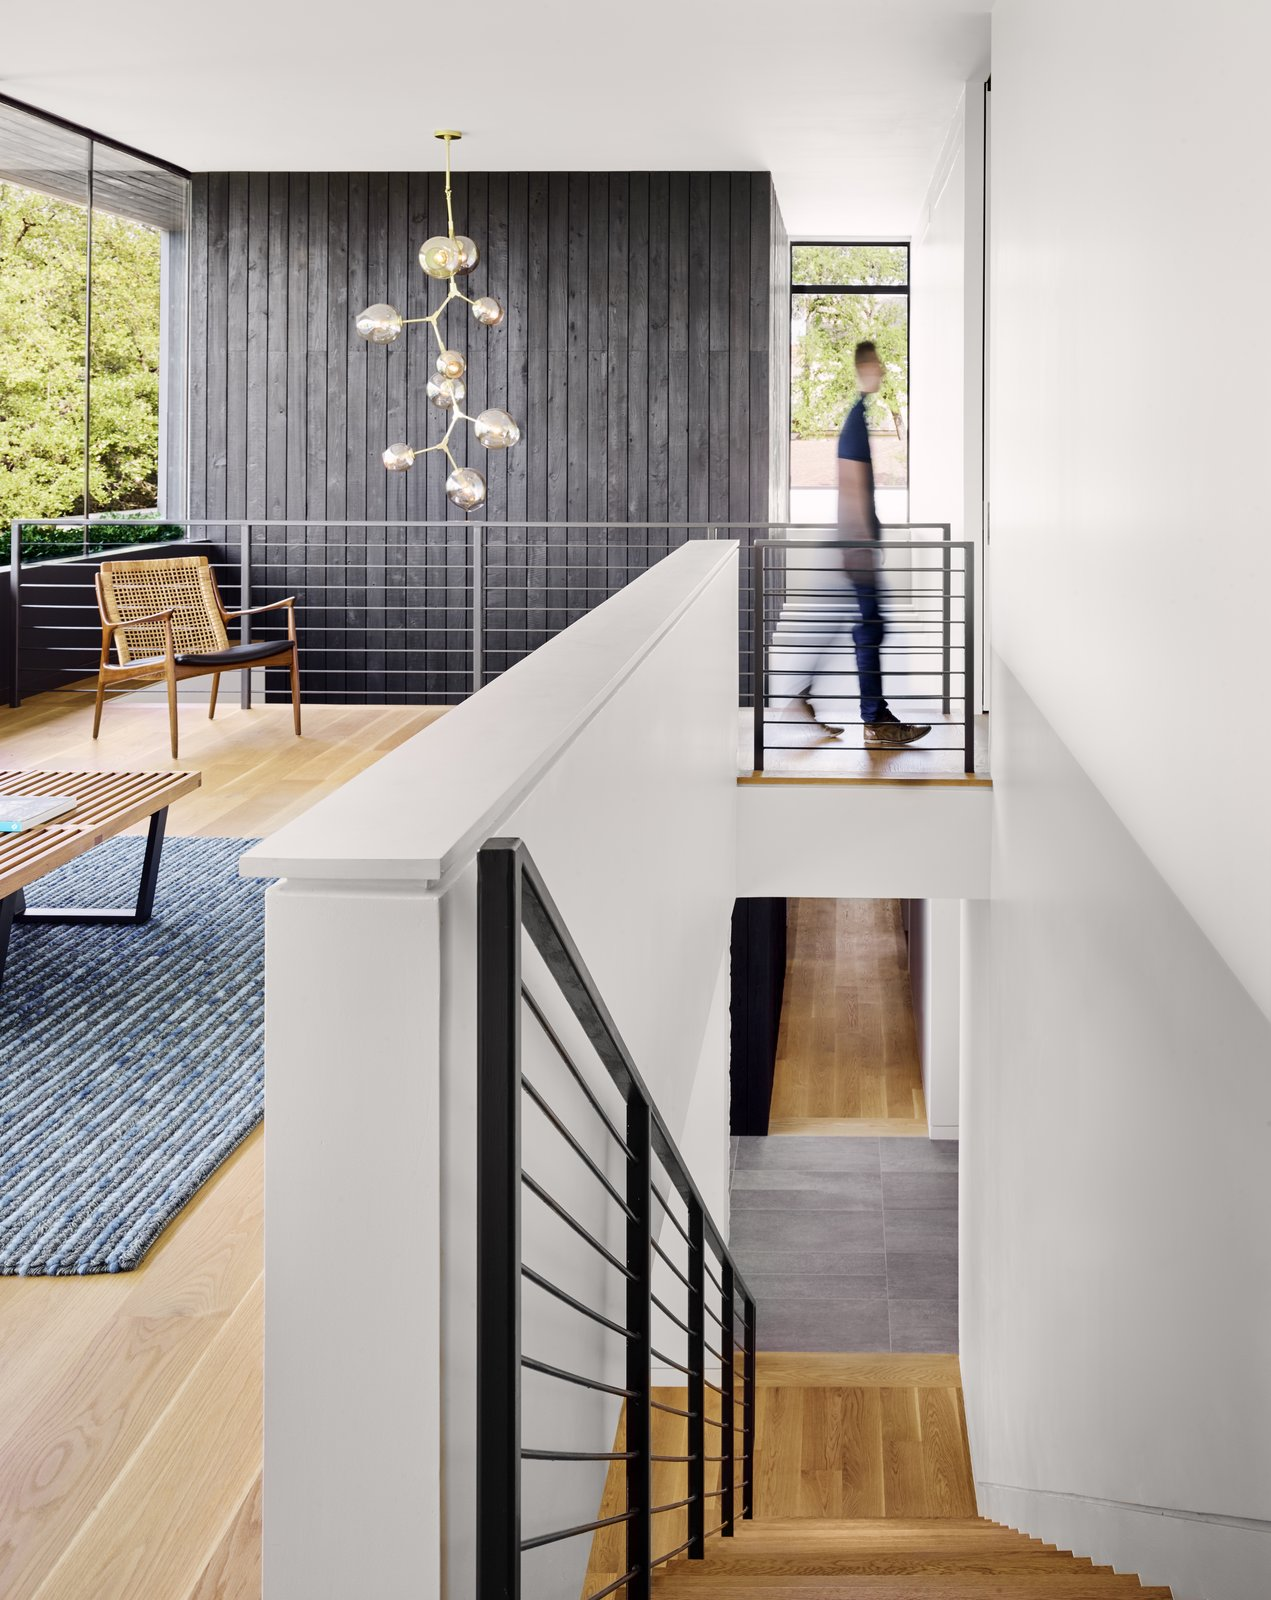 Staircase, Metal Railing, and Wood Tread The large windows open up the interiors by creating double-height spaces that draw natural light into the heart of the house.     Photo 8 of 13 in A Glass Addition Unveils Treetop Views For This Texan Home